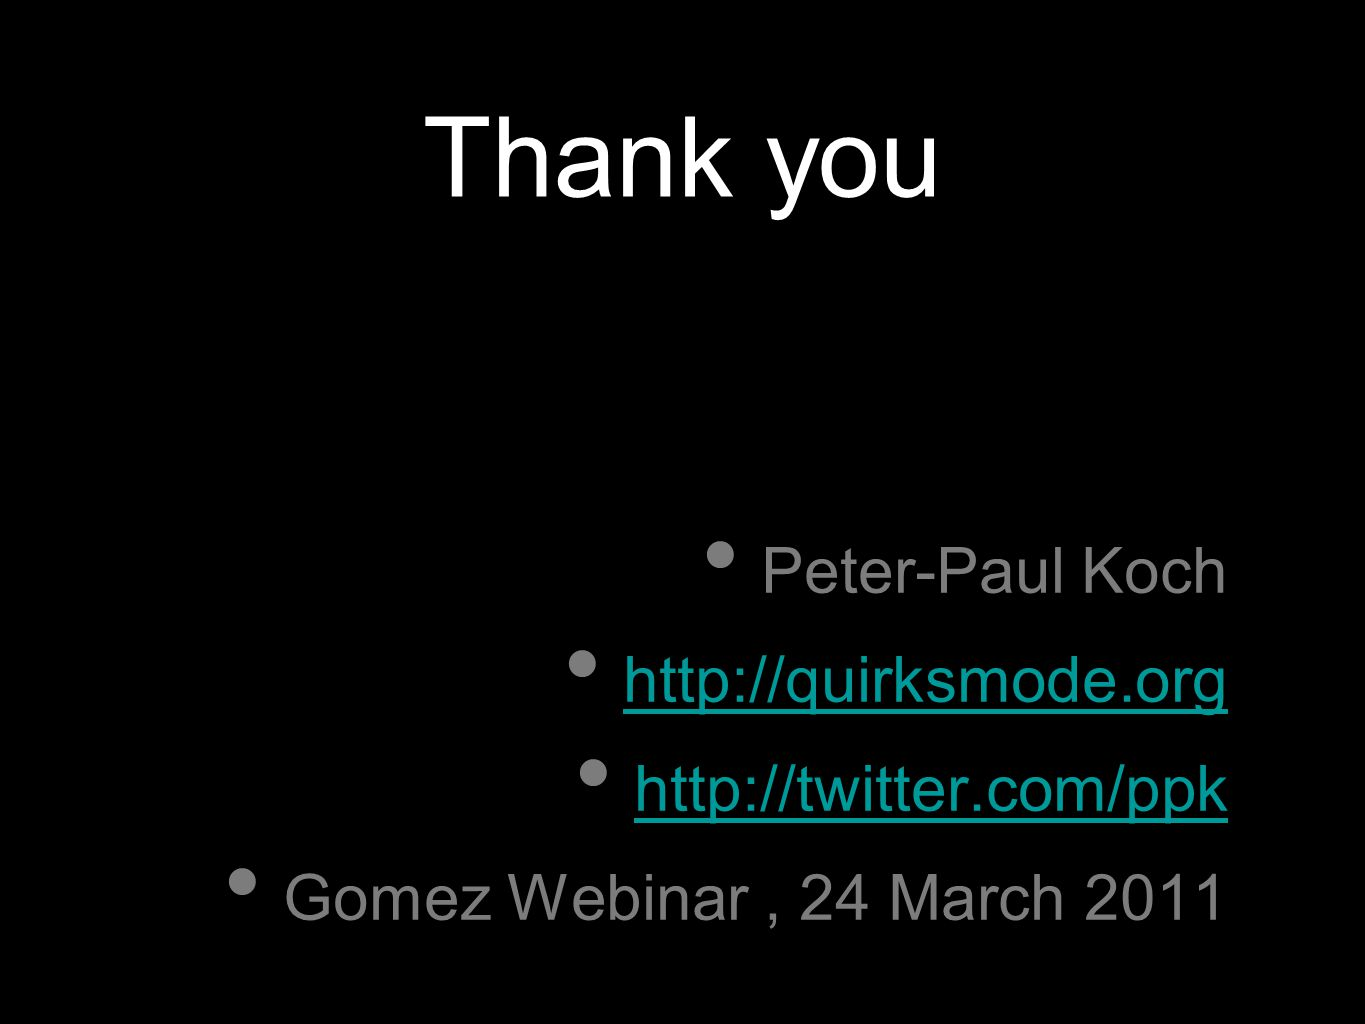 Thank you Peter-Paul Koch http://quirksmode.org http://twitter.com/ppk http://twitter.com/ppk Gomez Webinar, 24 March 2011 z